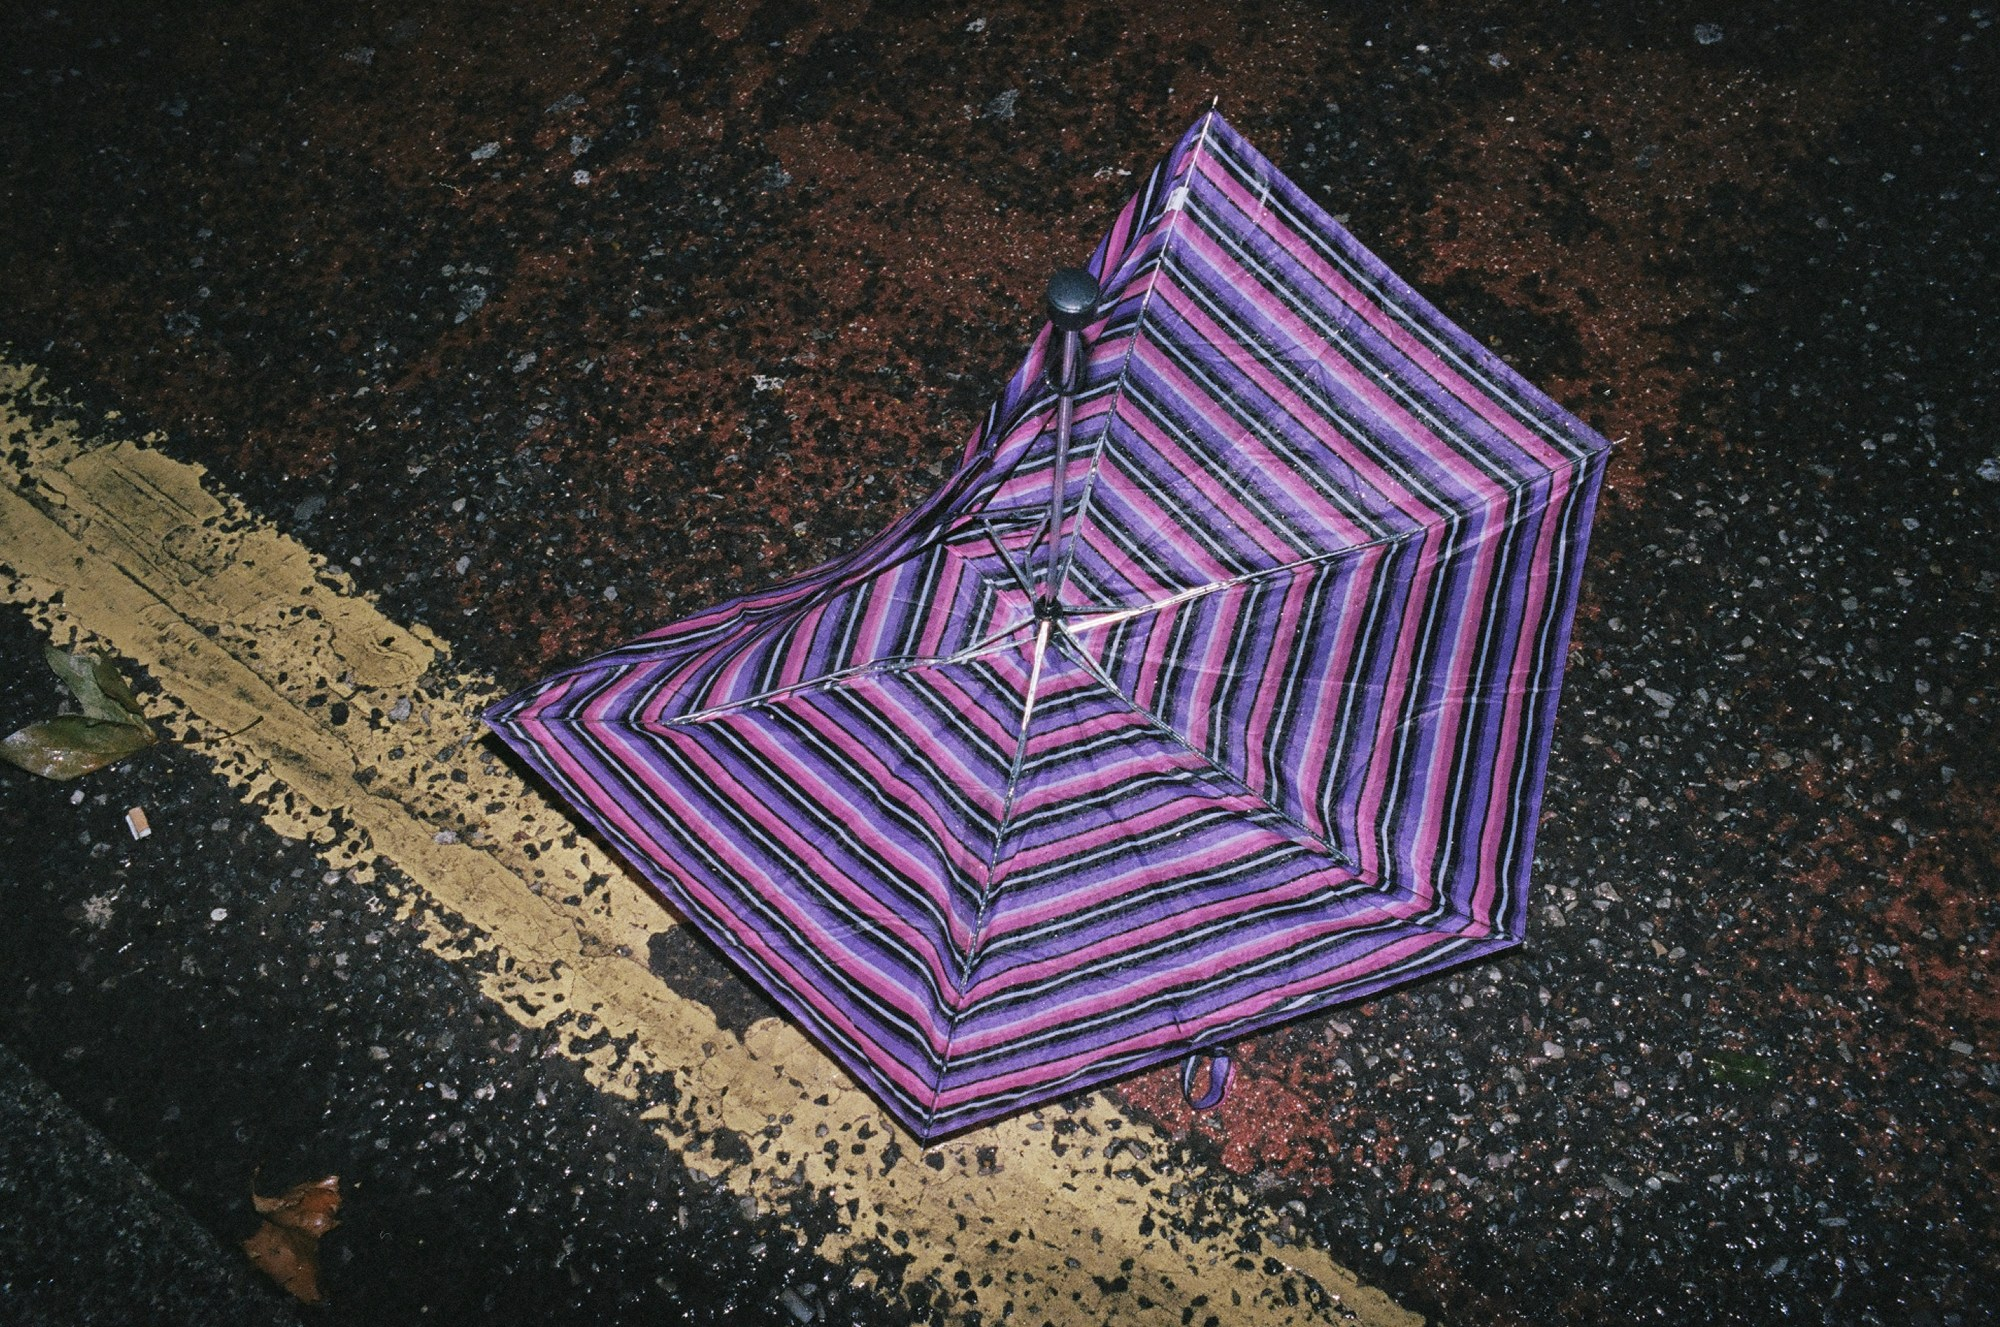 Purple umbrella on the ground with diagonal yellow line. Beautiful to me.